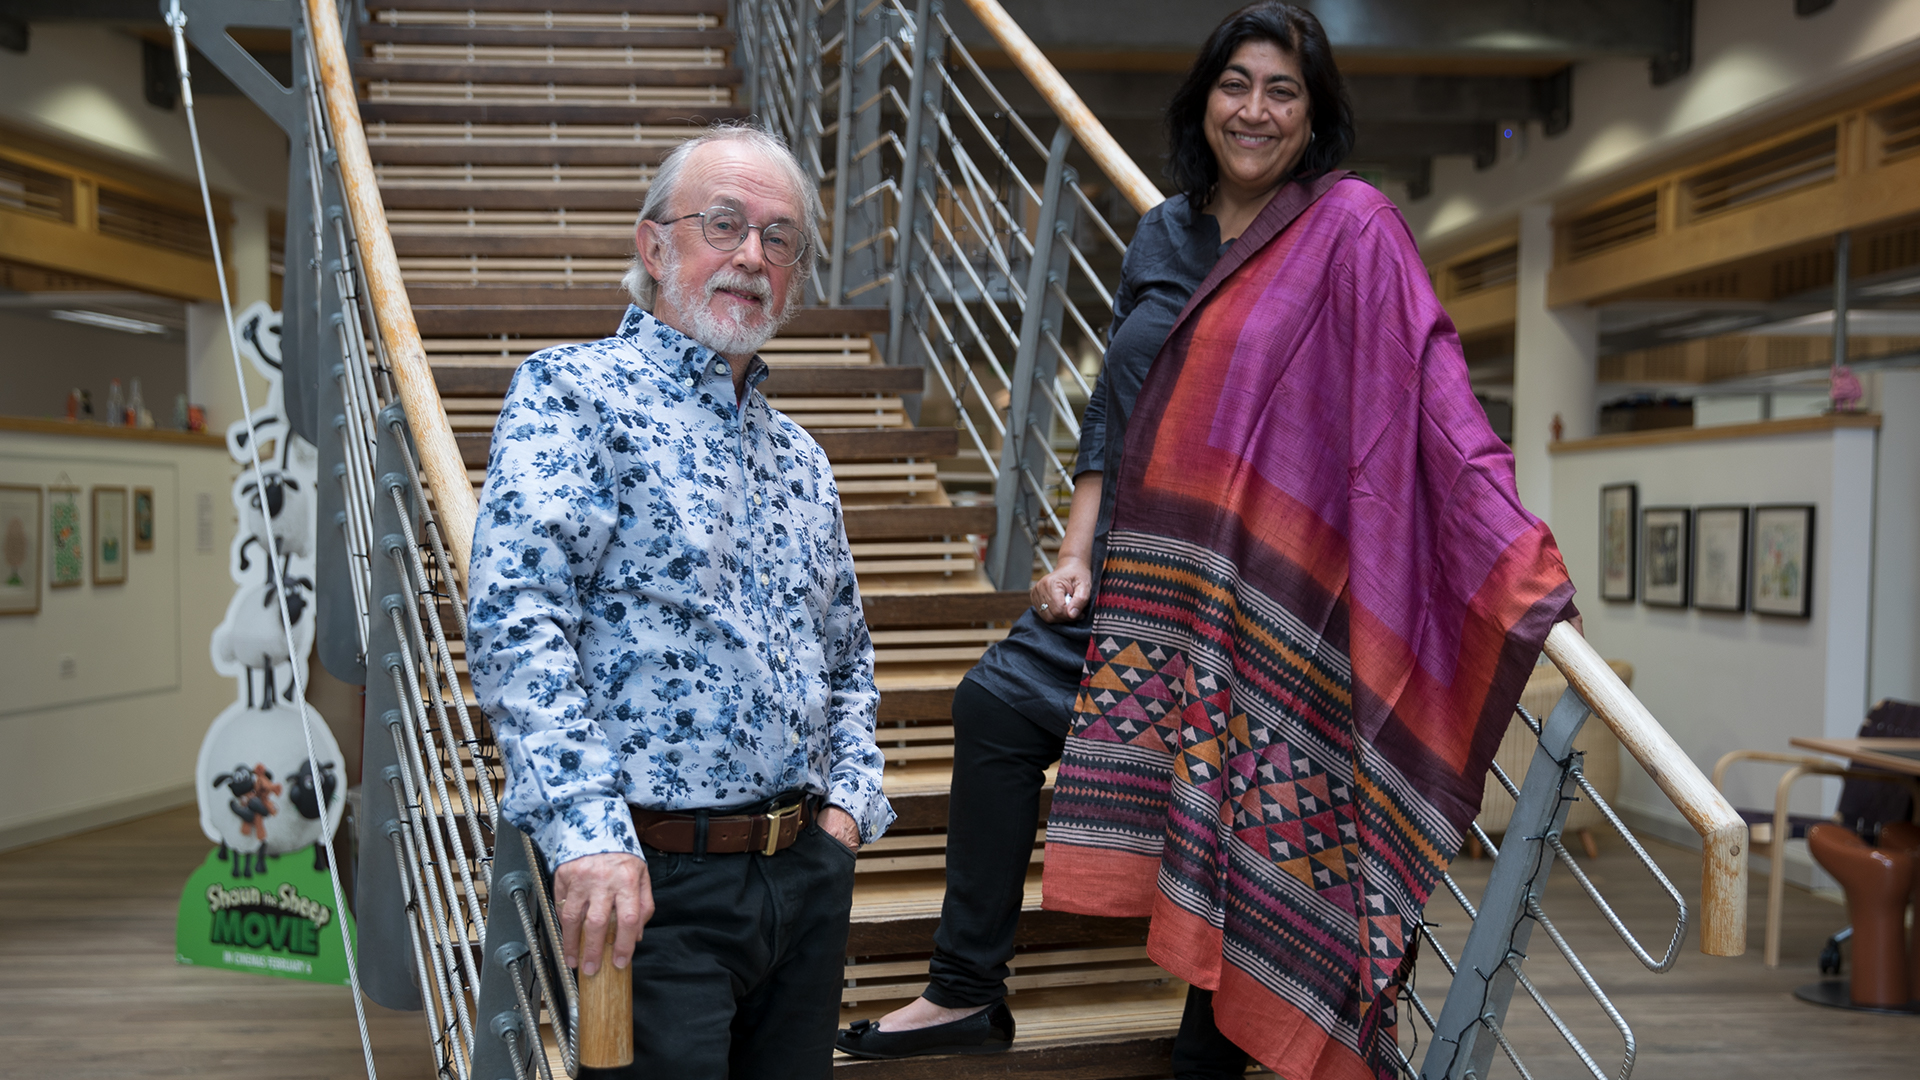 Peter Lord and Gurinder Chadha